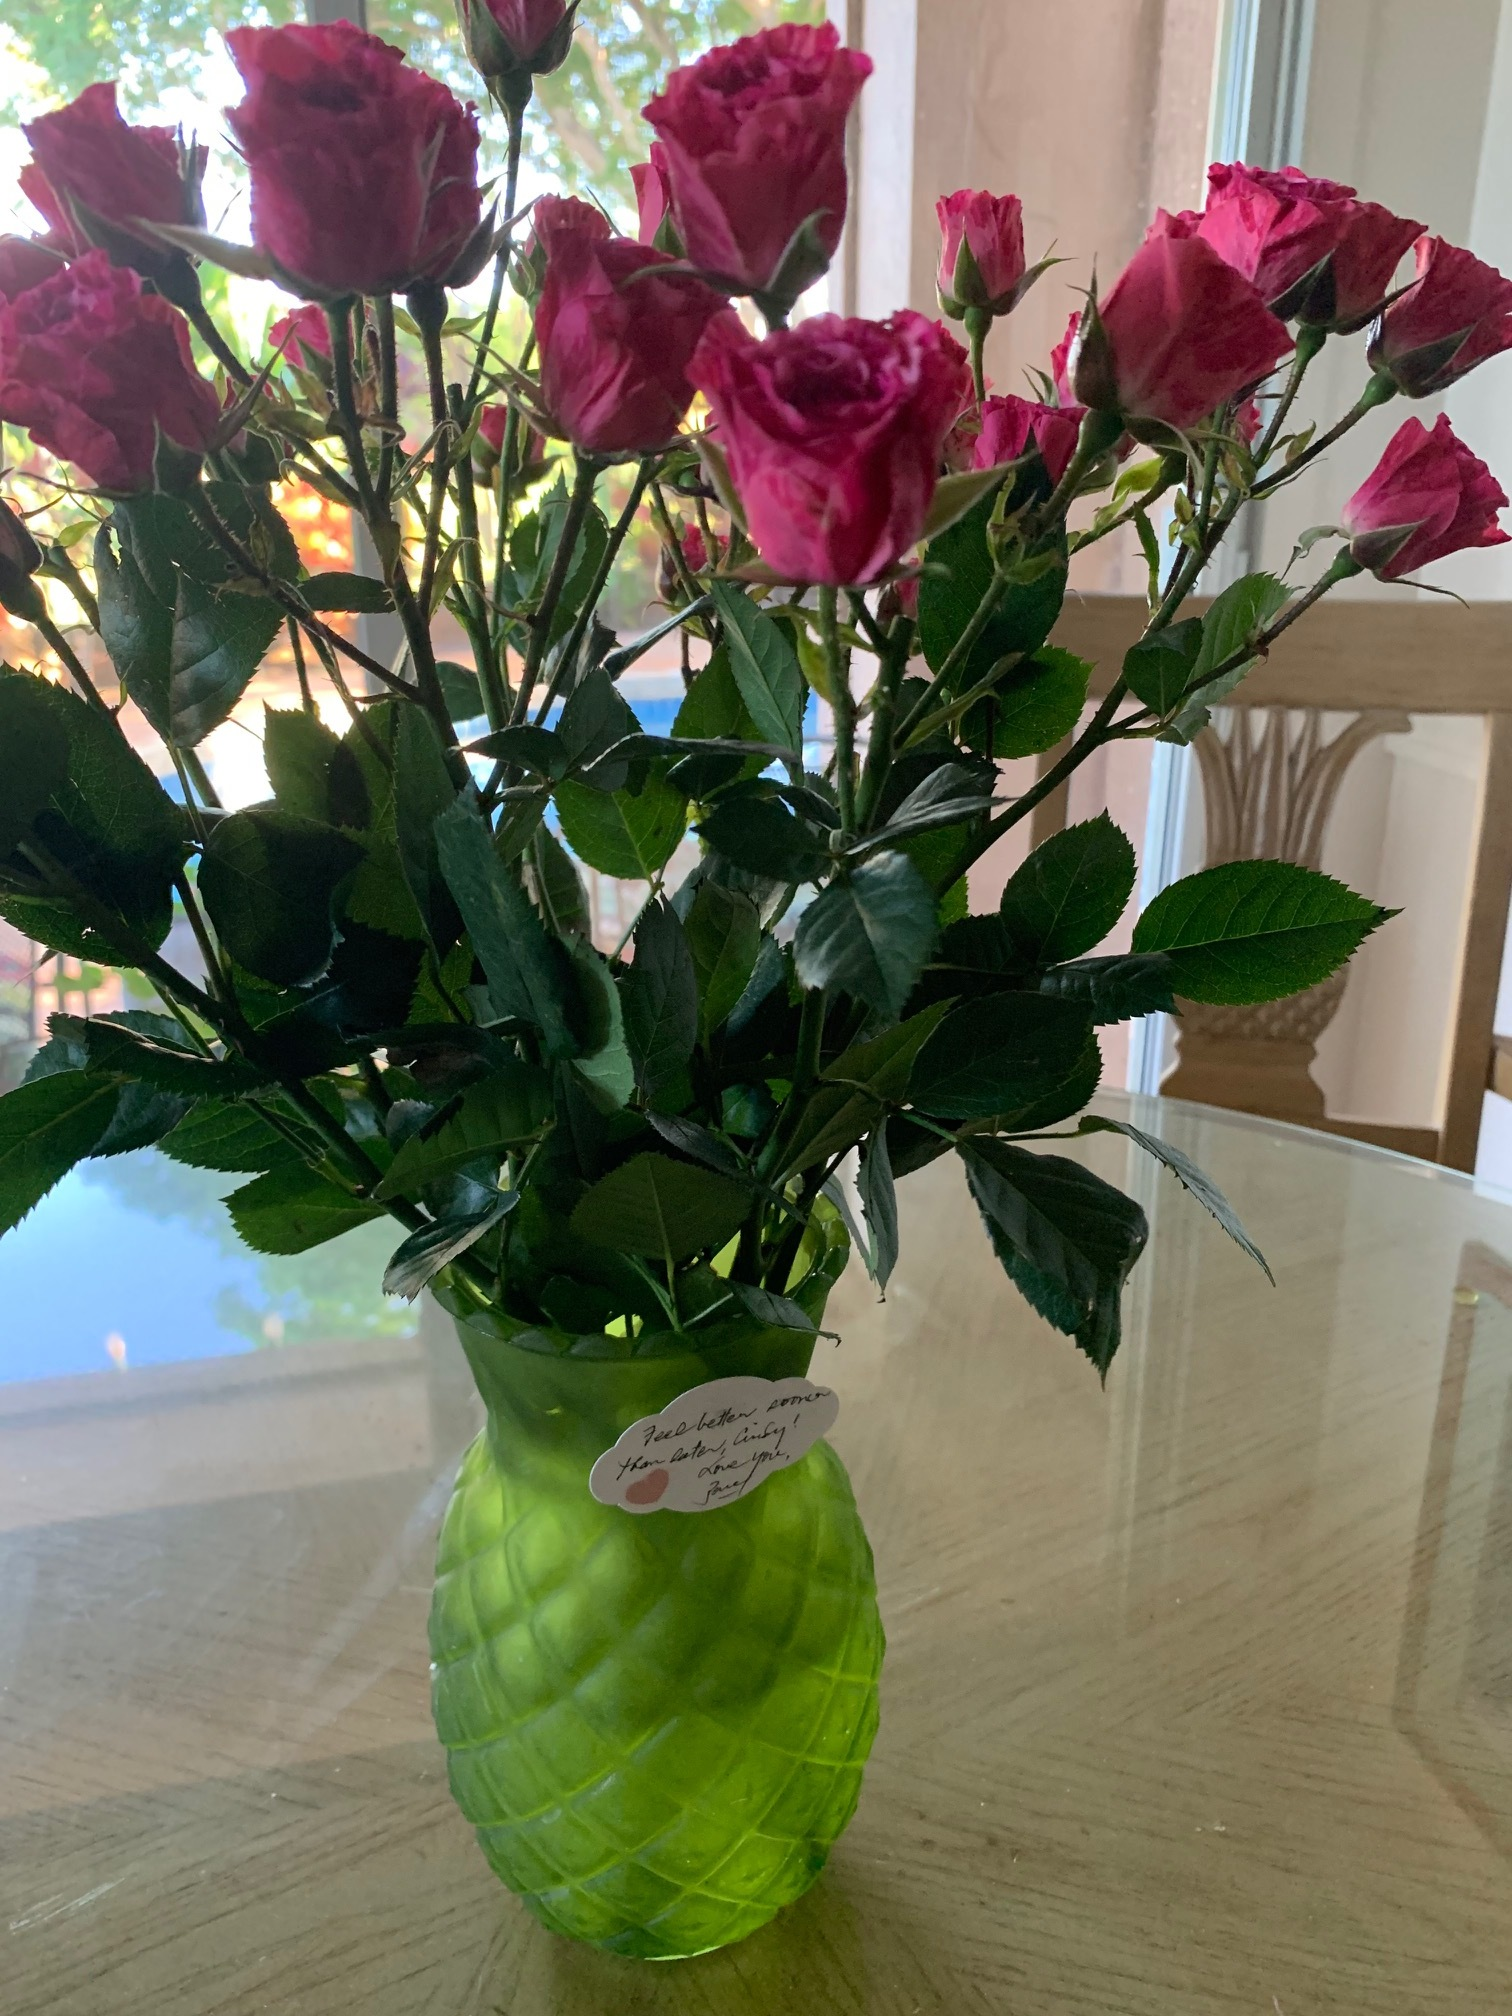 Flowers from Zeny